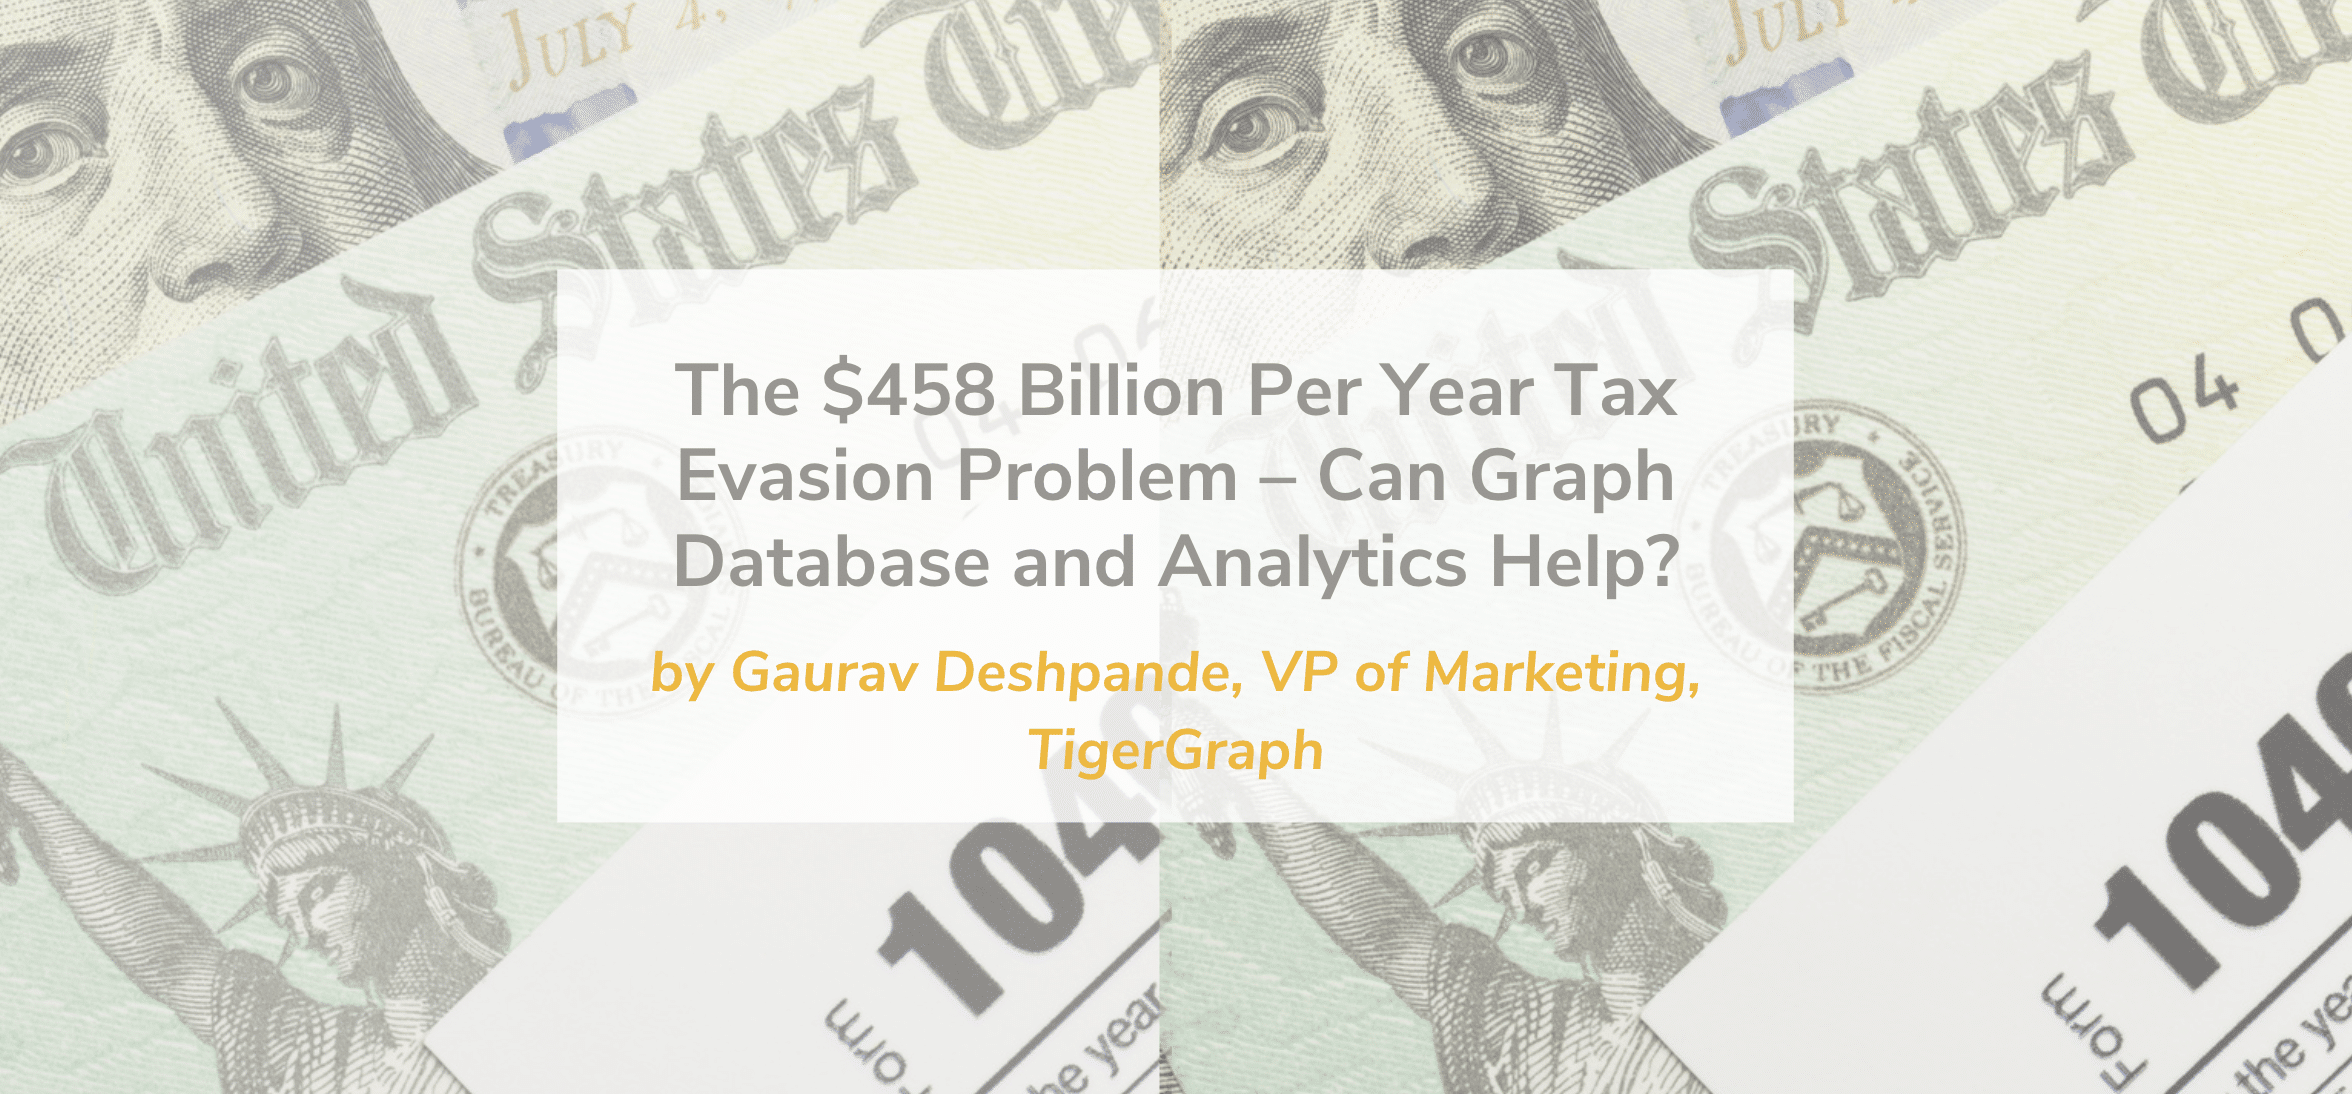 The $458 Billion Per Year Tax Evasion Problem – Can Graph Database and Analytics Help?